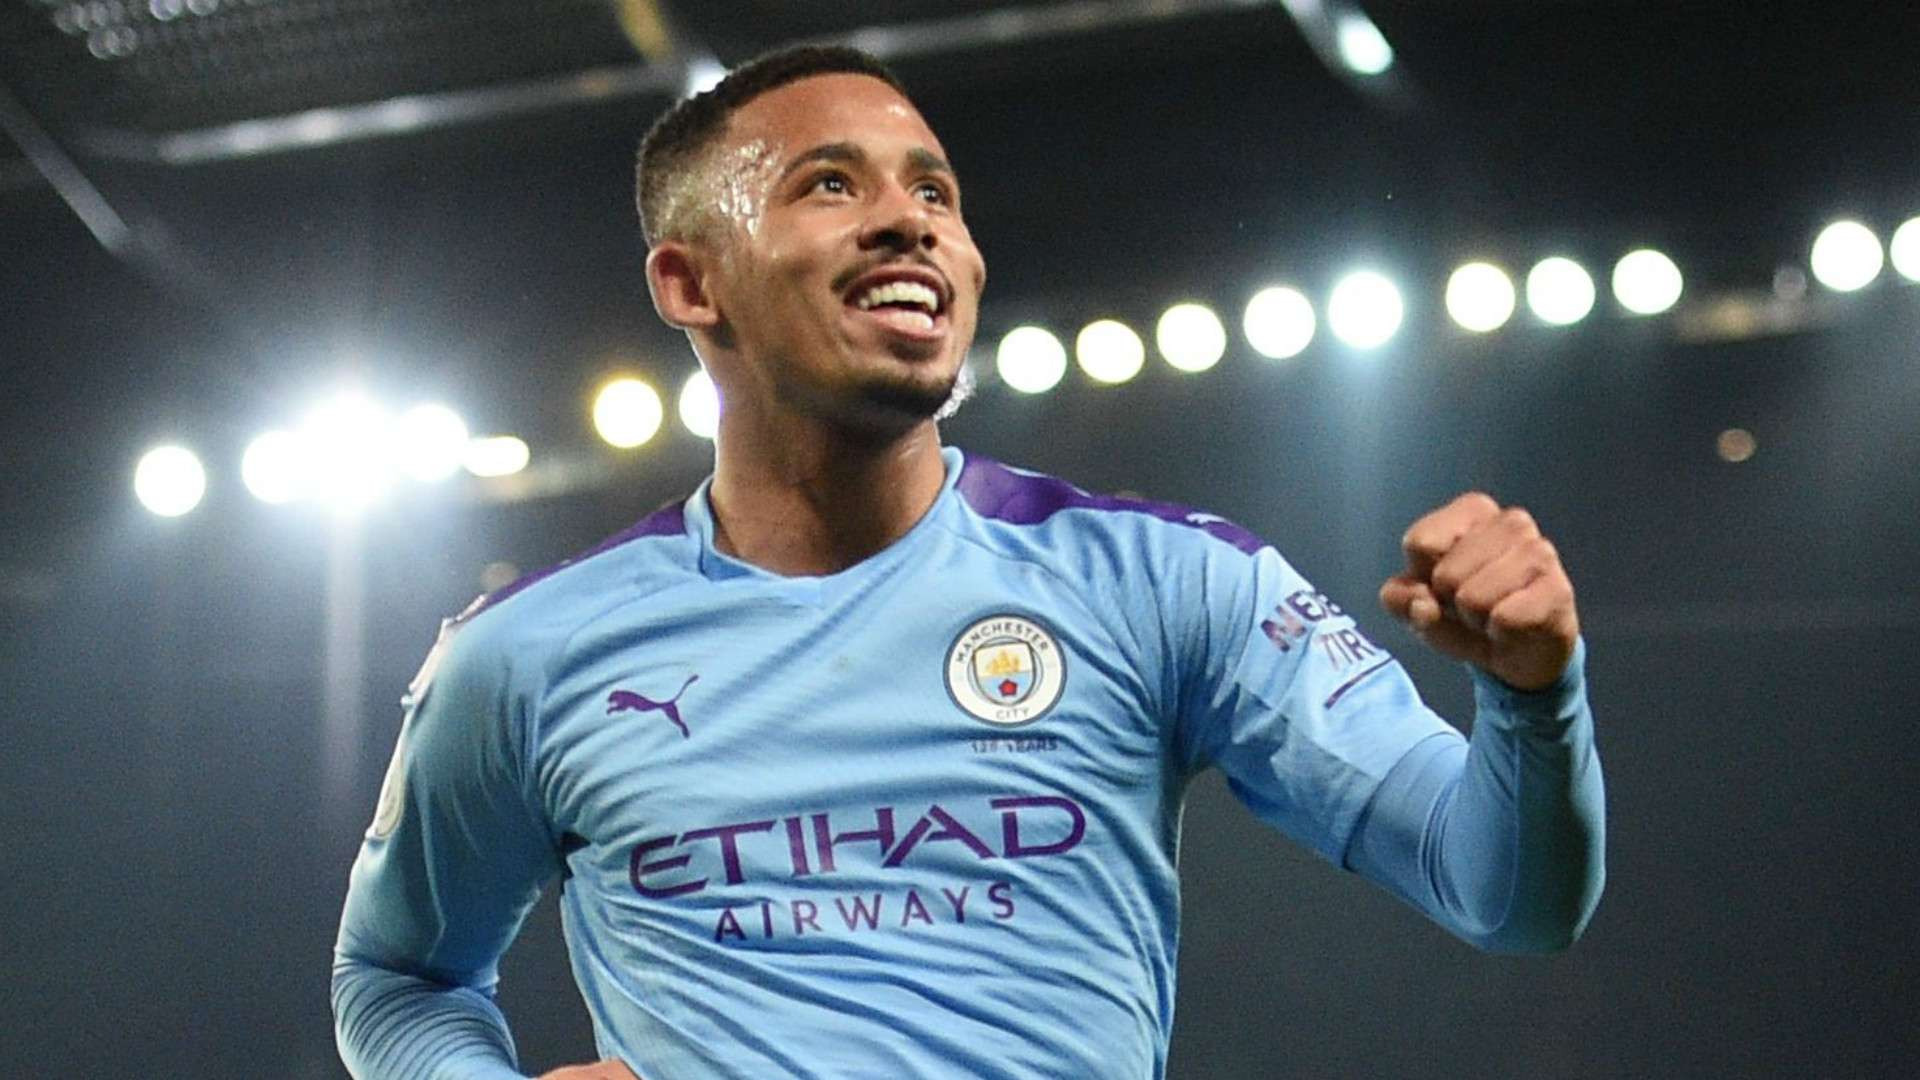 jesus:-man-city-is-the-best-place-for-me-to-develop